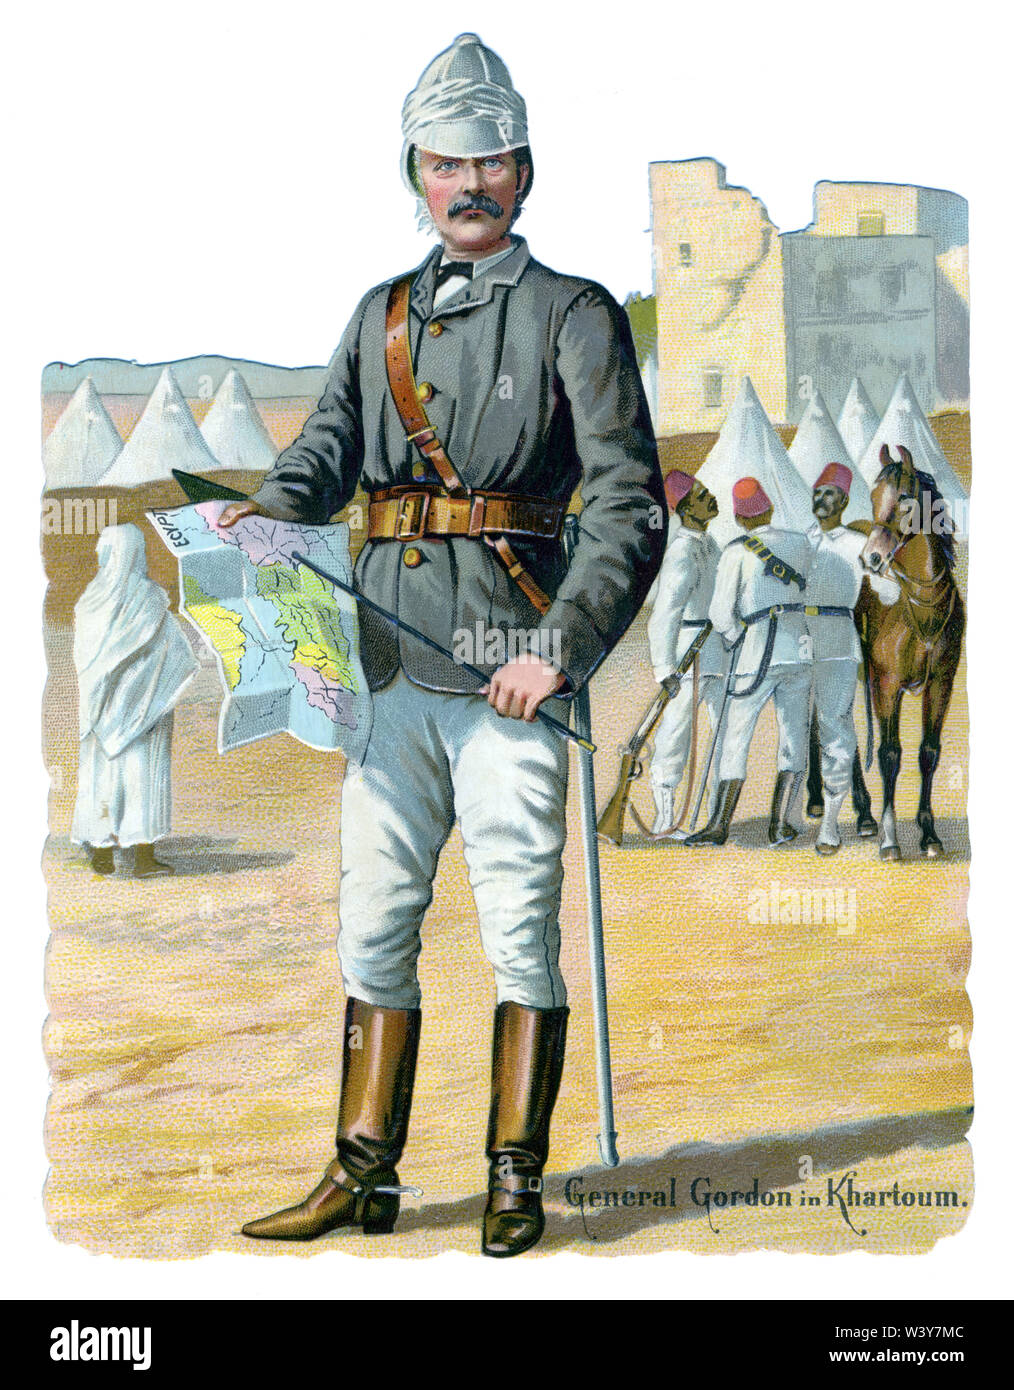 General Gordon in Khartoum, 1885 portrait of the Governor General of the Sudan, killed by the Mahdi at the end of the siege of Khartoum, on a Victorian lithographic scrap - Stock Image